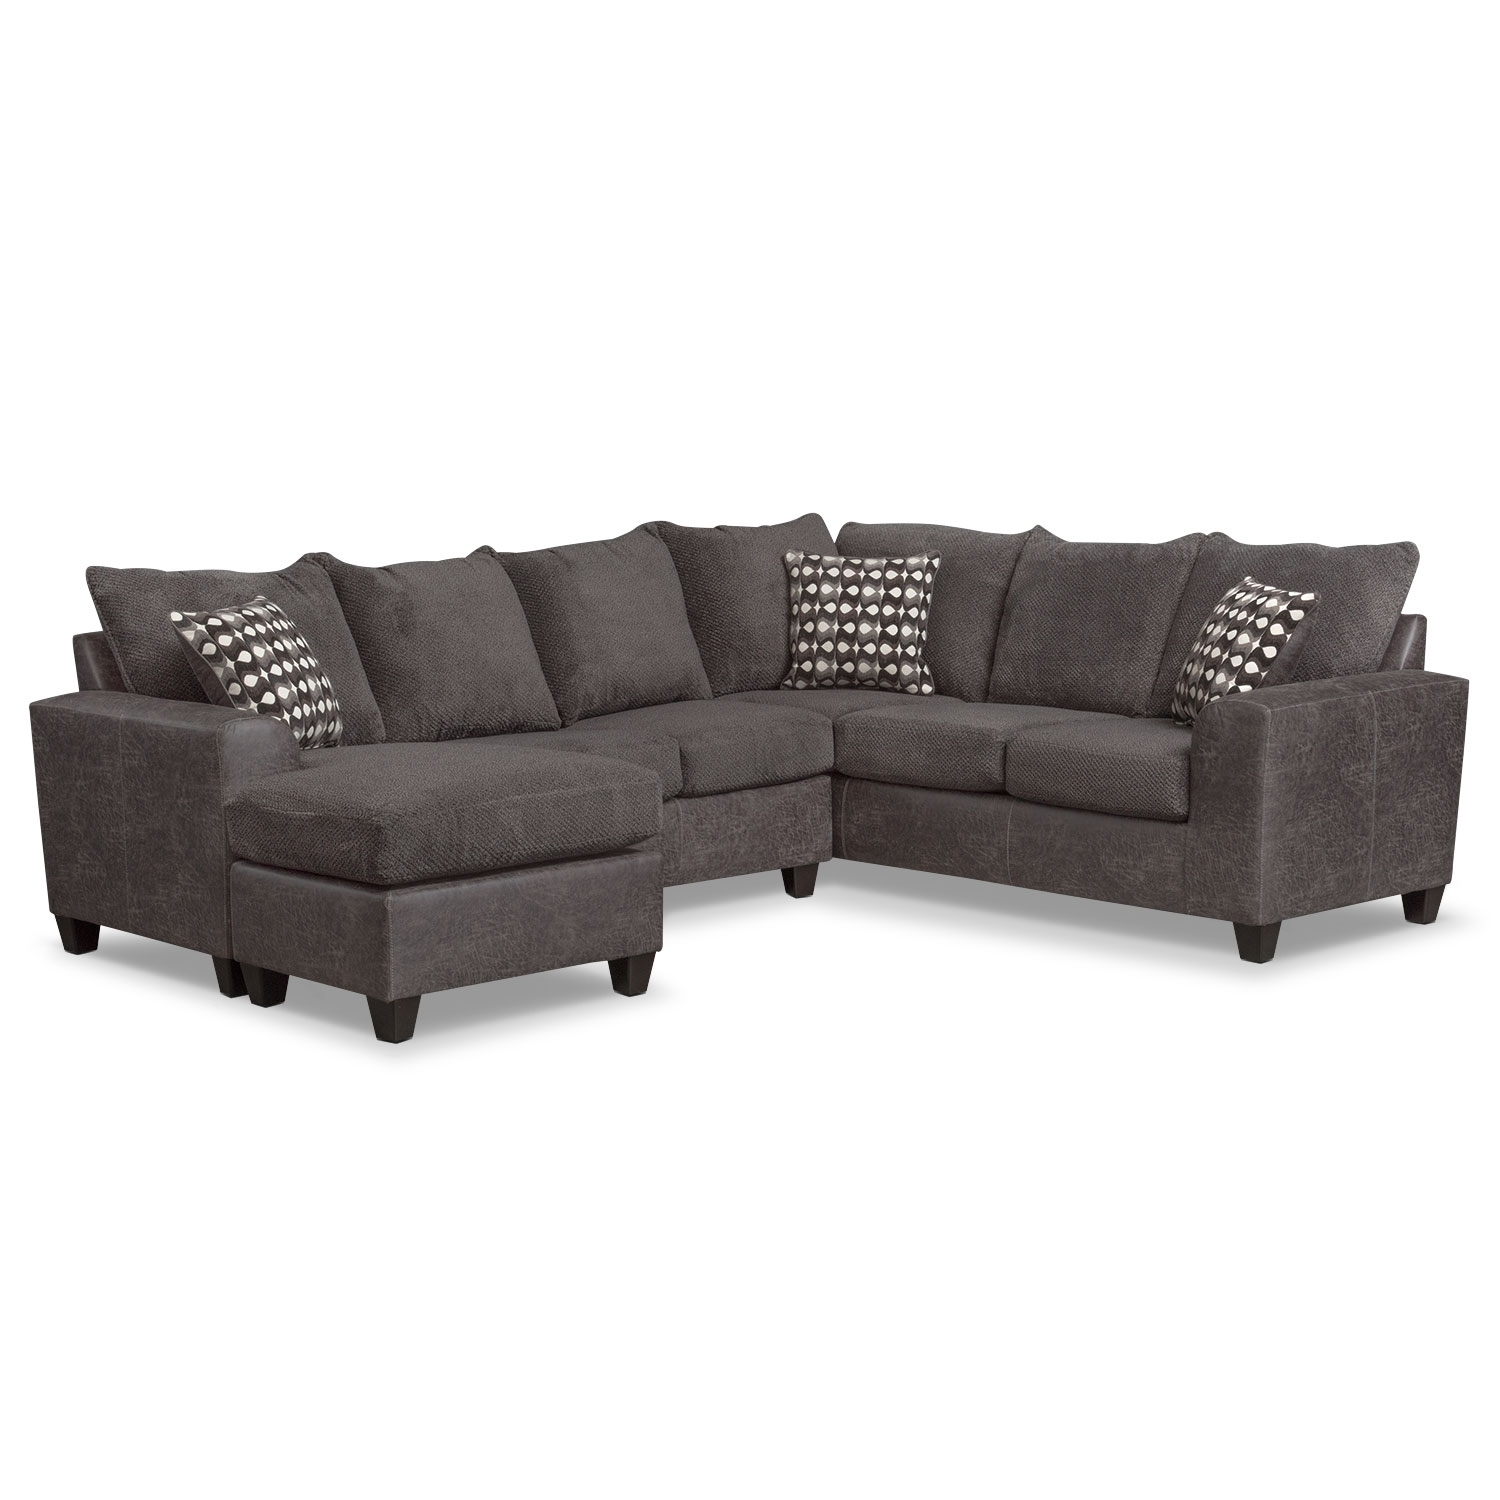 Brando 3 Piece Memory Foam Sleeper Sectional – Smoke | American Within Mesa Foam 2 Piece Sectionals (View 21 of 25)